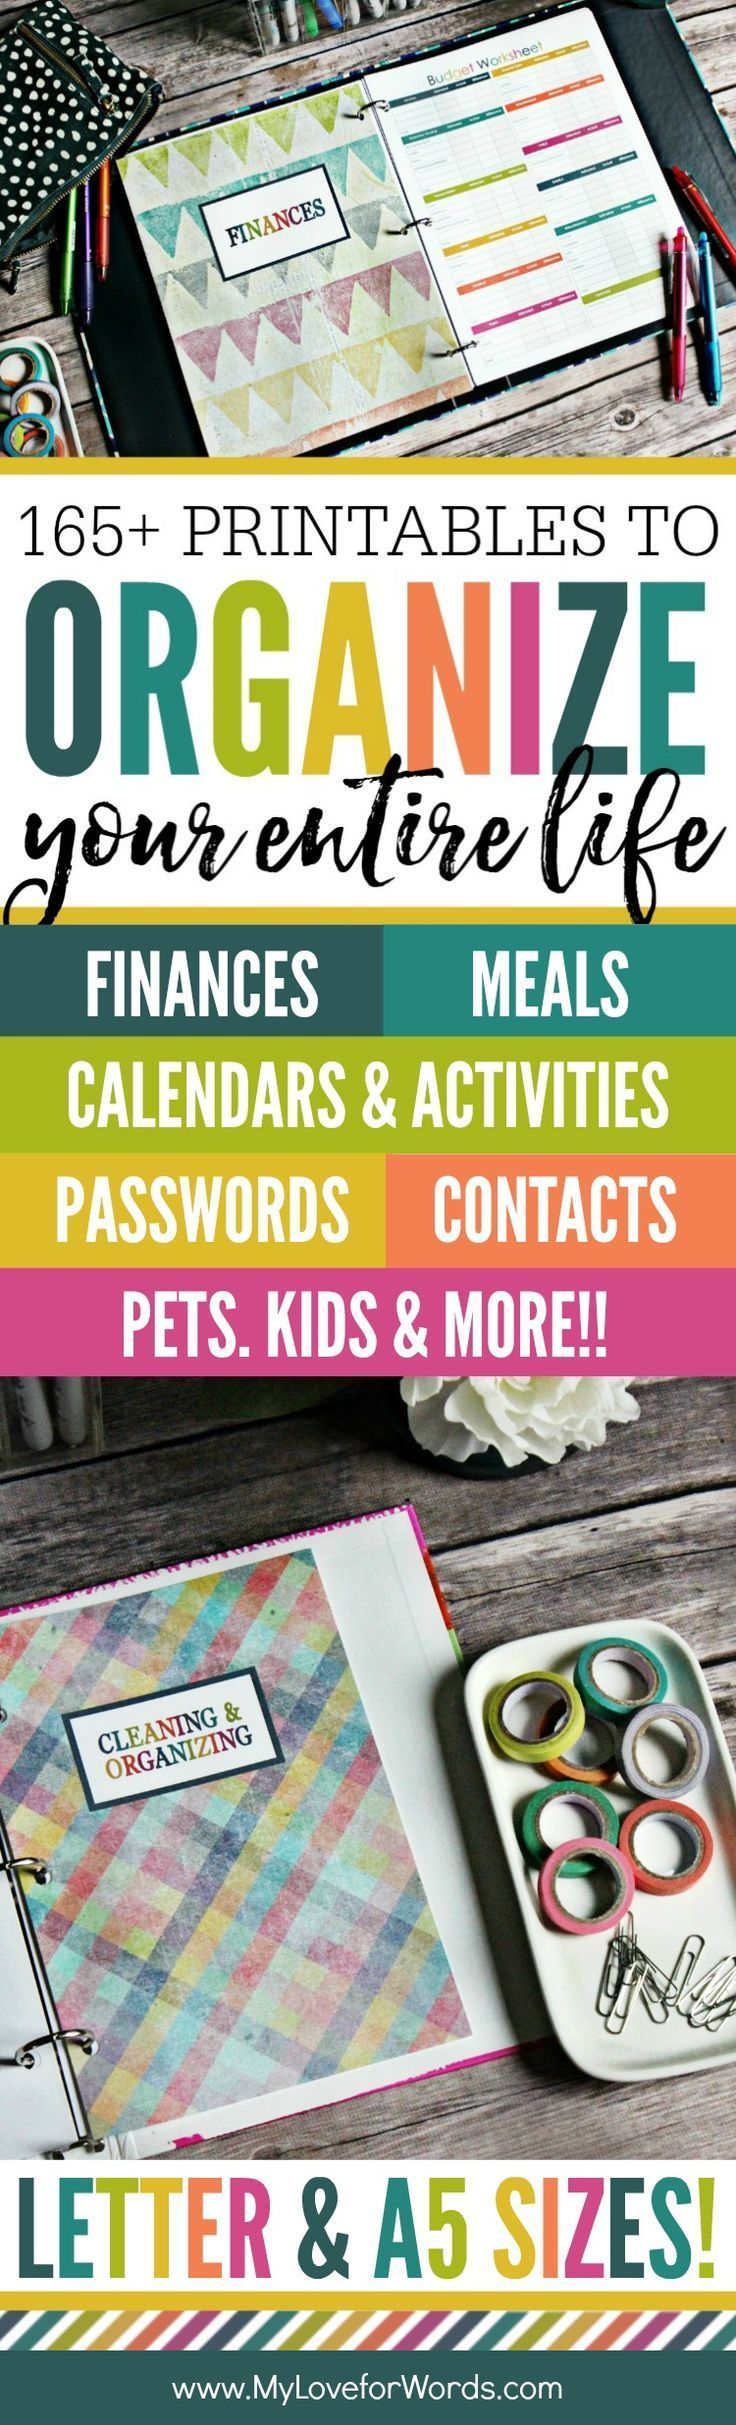 35 best heartfelt stories images on pinterest cardiovascular getting organized just got easier this printable planner is perfect for organizing your time fandeluxe Gallery